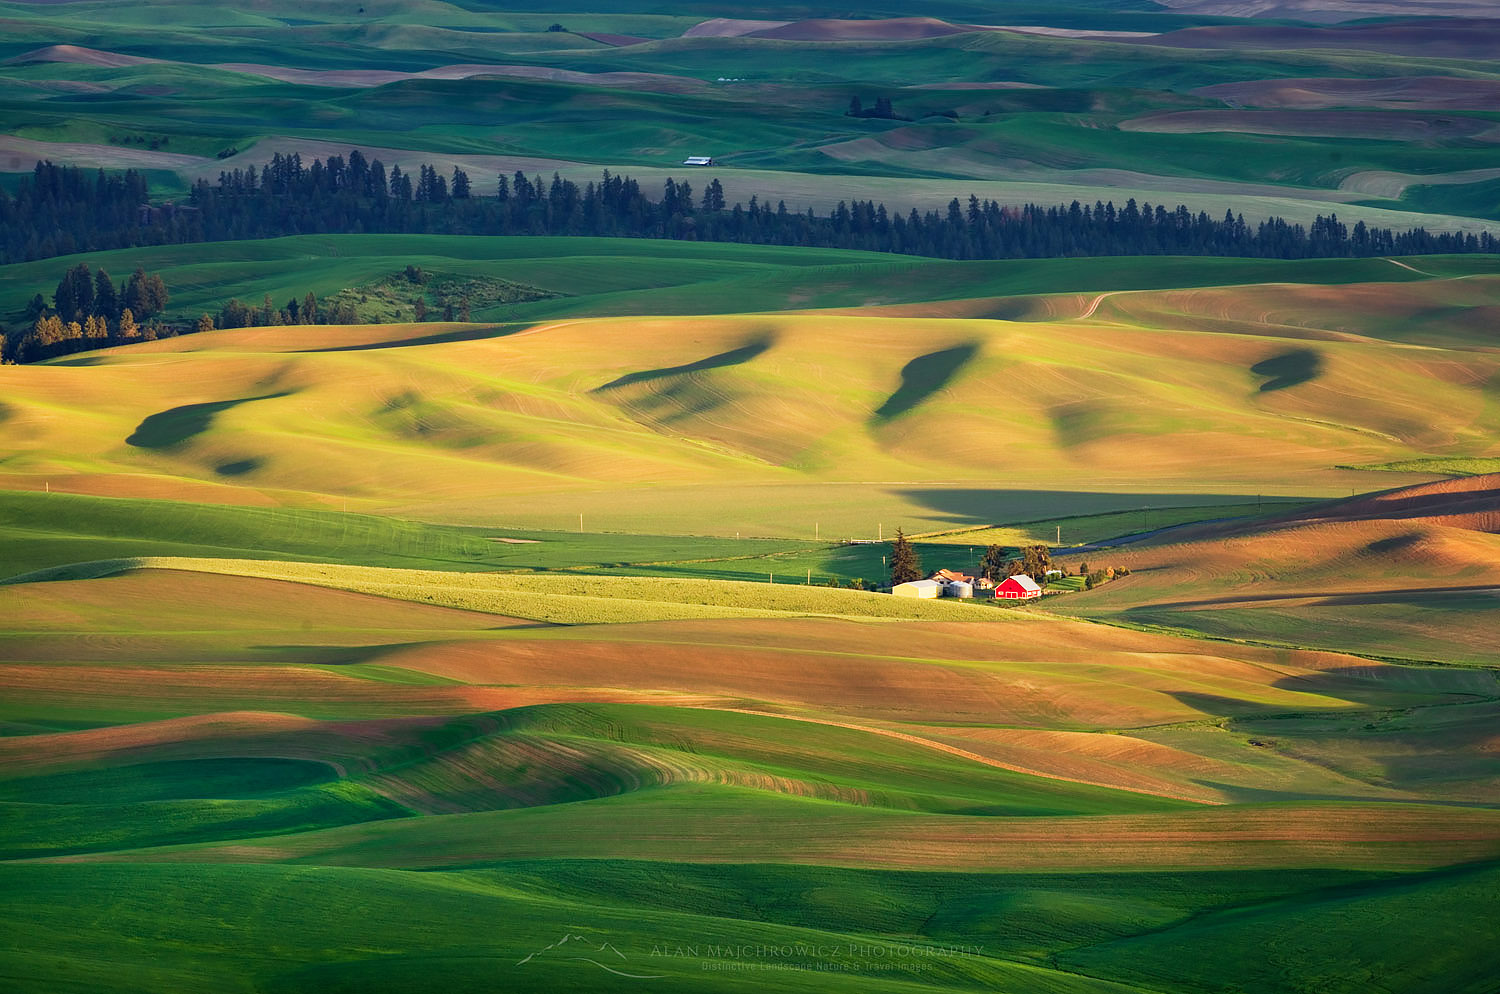 https://alanmajchrowicz.com/wp-content/uploads/2019/01/palouse_washington_51649.jpg